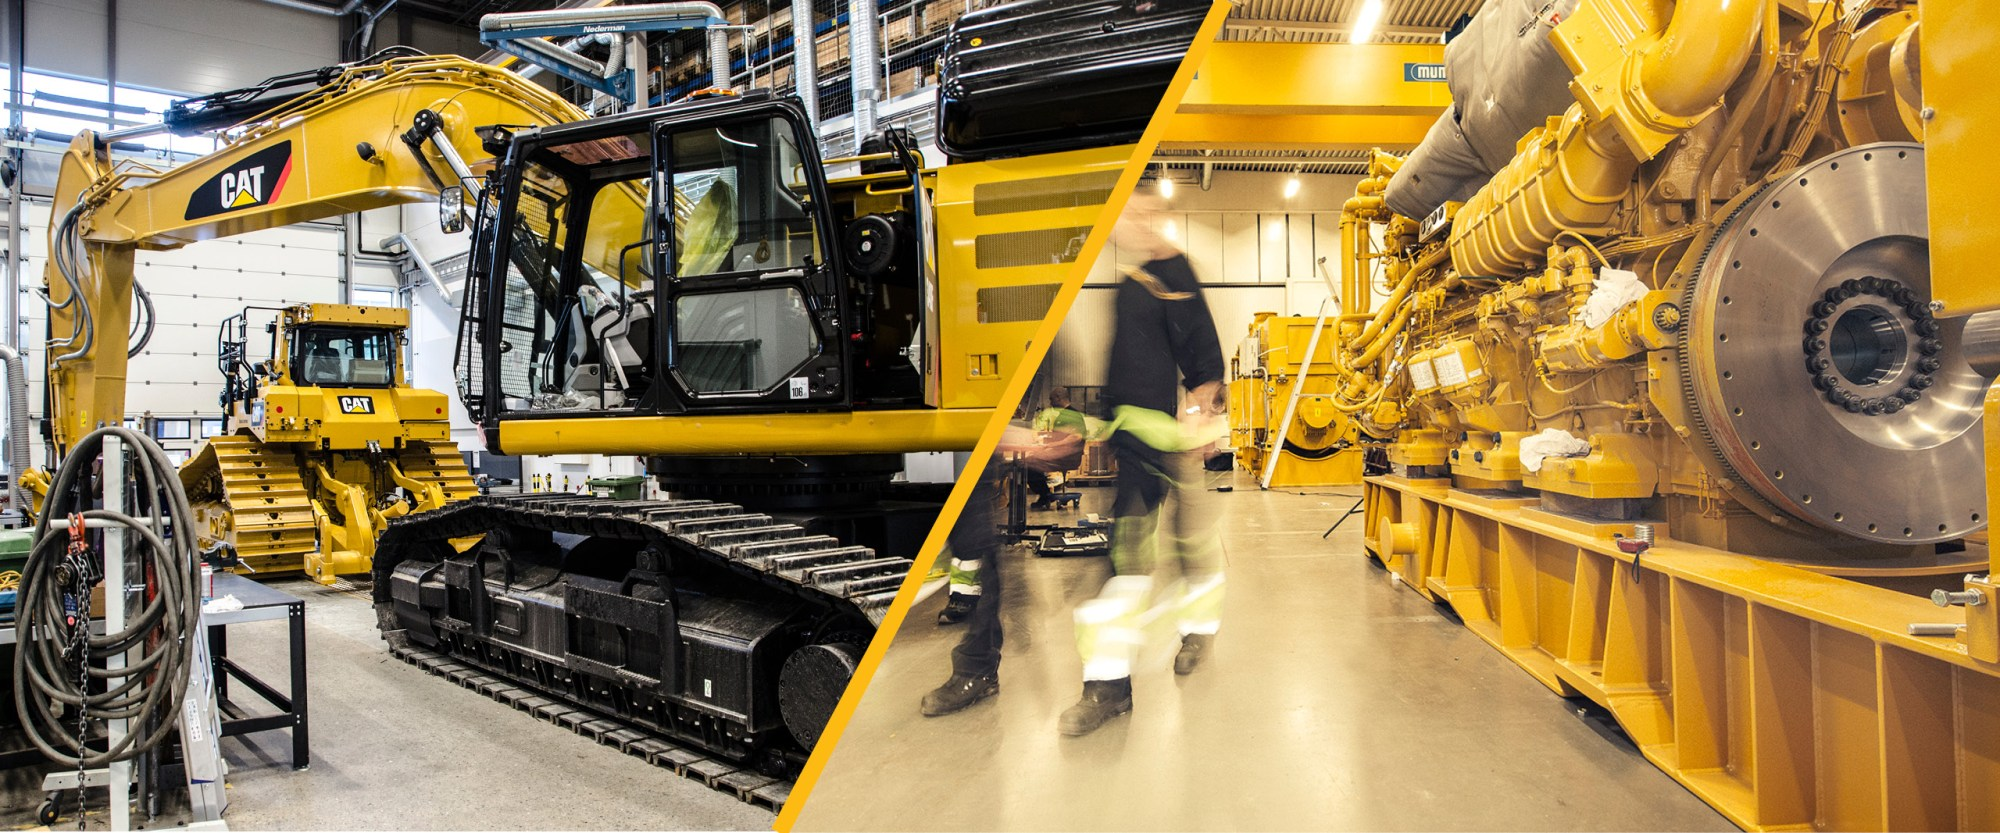 hight resolution of pon equipment and pon power the caterpillar dealer